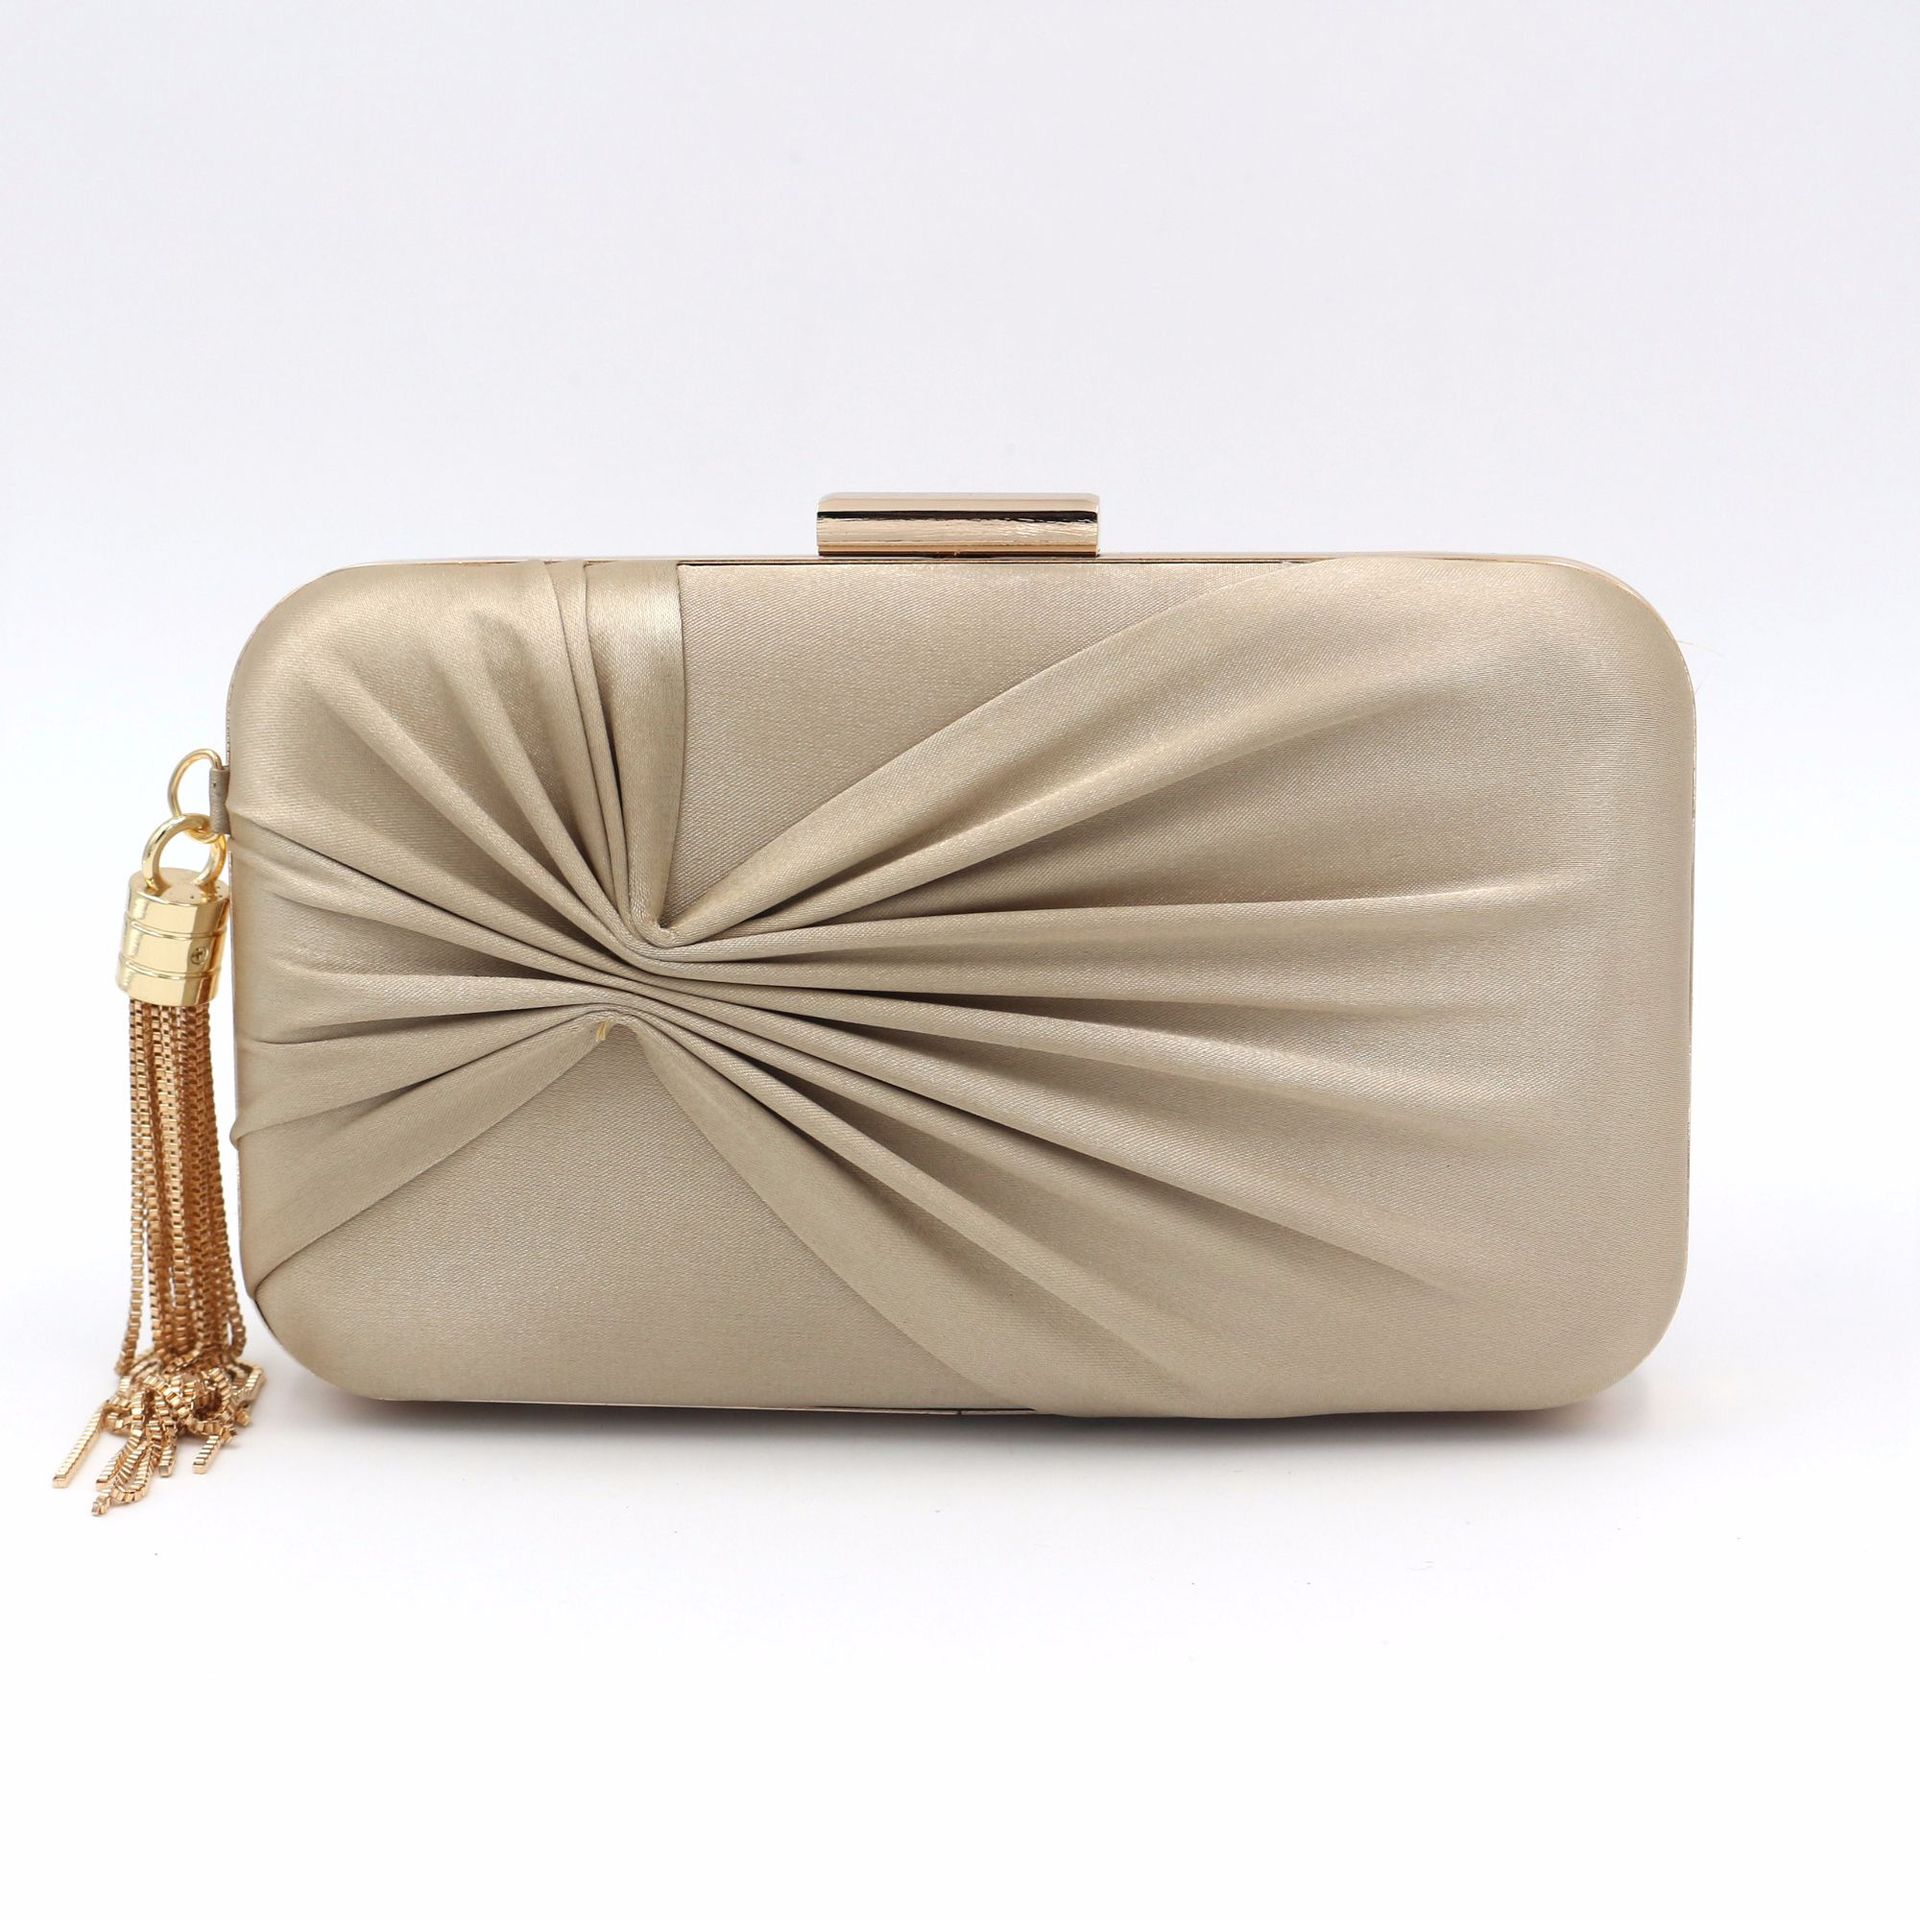 Vintage Dinner Bag Golden Tassel Evening Dress Bag Womens Satin Silk Handbag Day Clutch Elegant Purse